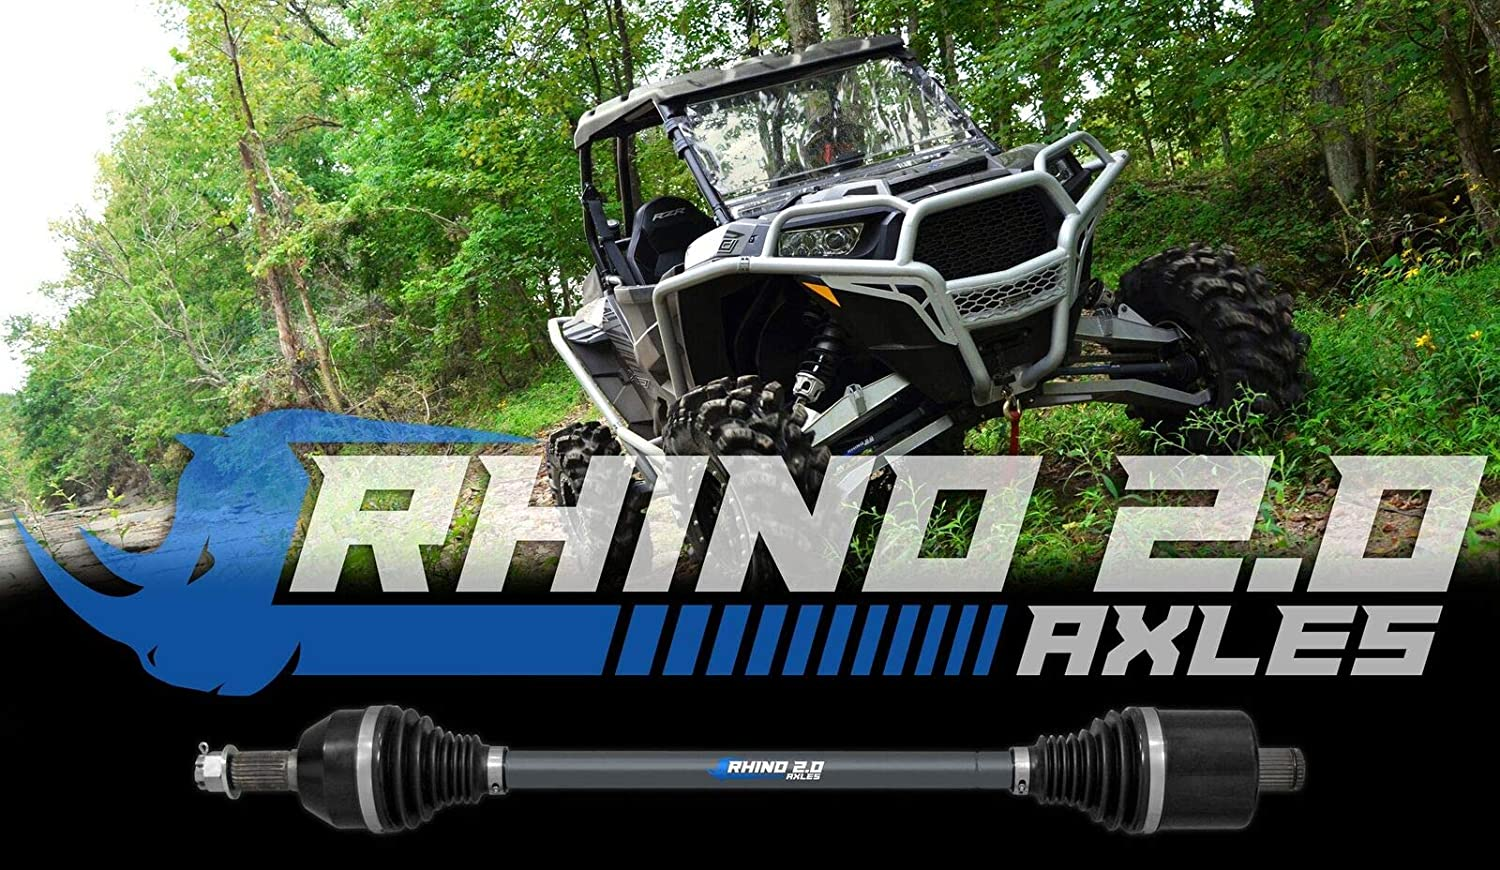 2016+ REAR SuperATV Rhino 2.0 Polaris RZR XP Turbo For Use With SuperATV 10 Lift Extended Length CV Axle